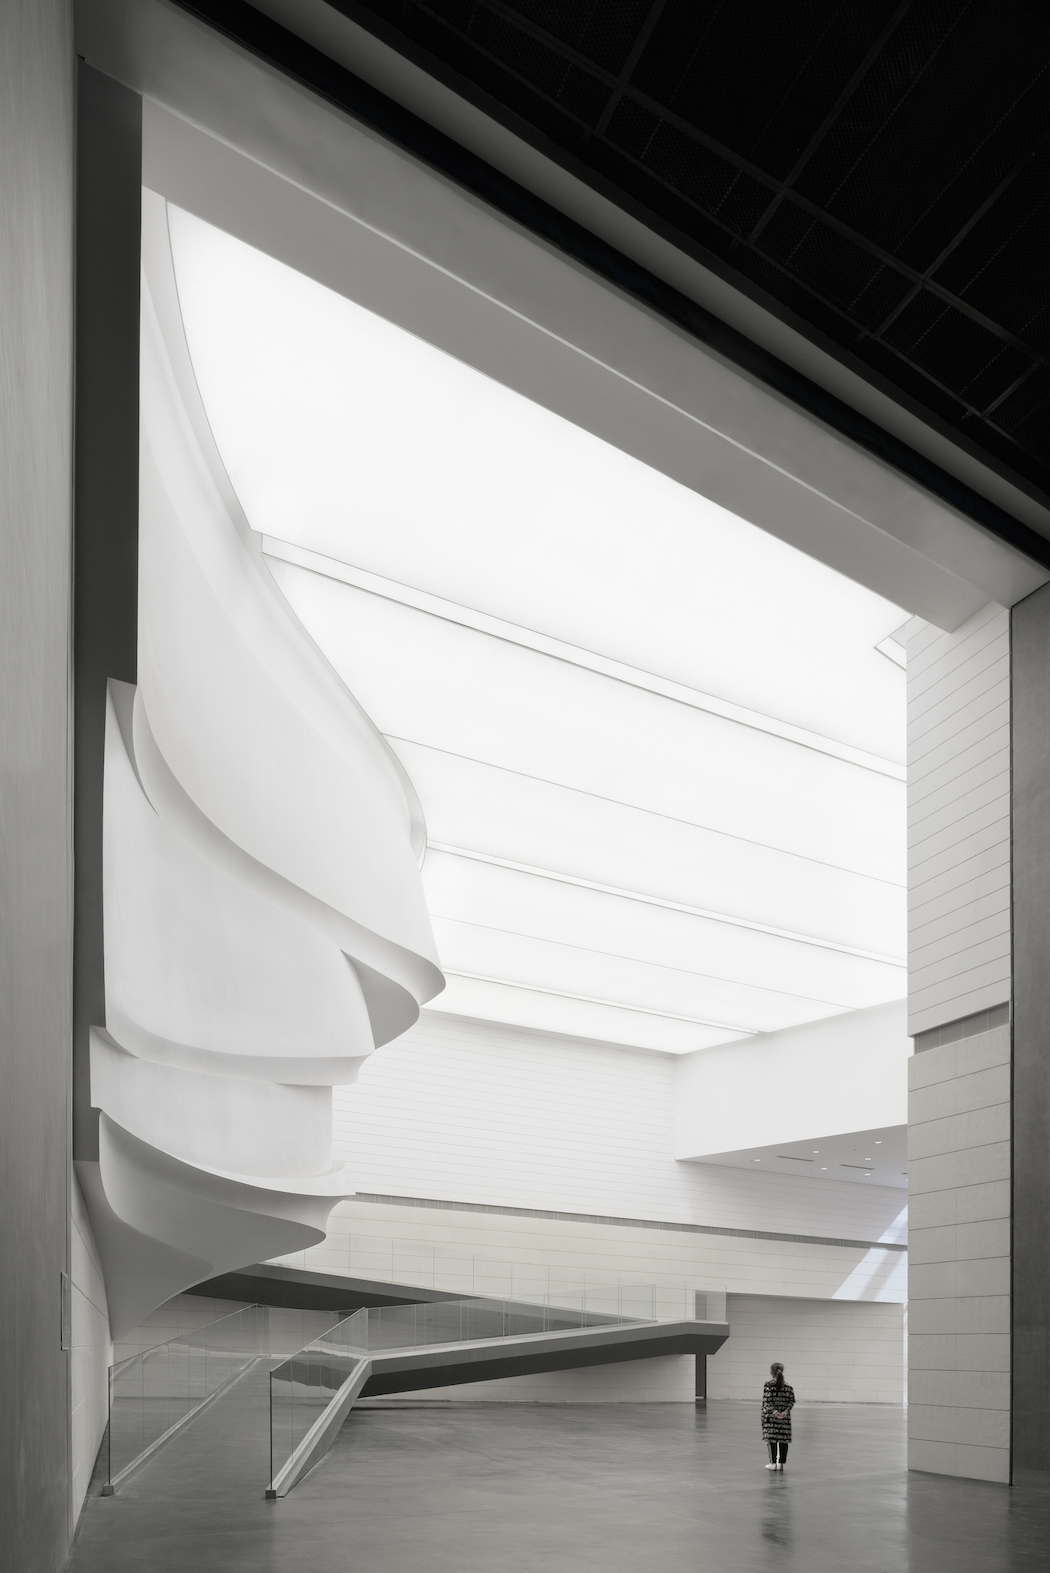 Yinchuan Museum of Contemporary Art (MOCA) : waa (we architech anonymous) 2